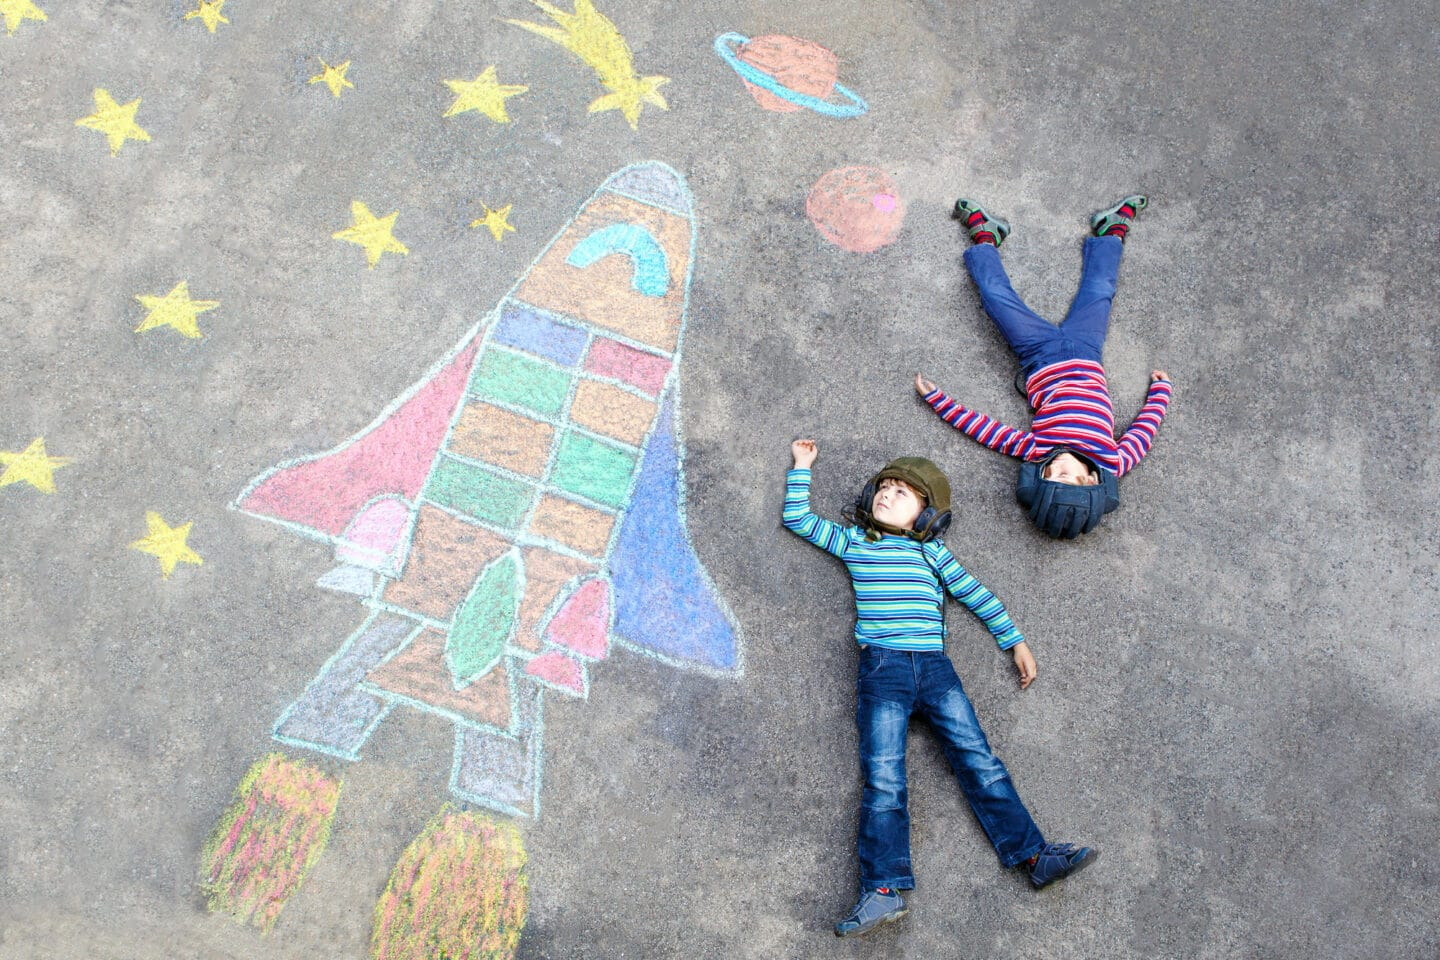 two children in stripy shirts and jeans lie on a playground where there are drawings in chalk of a rocket, stars and planets